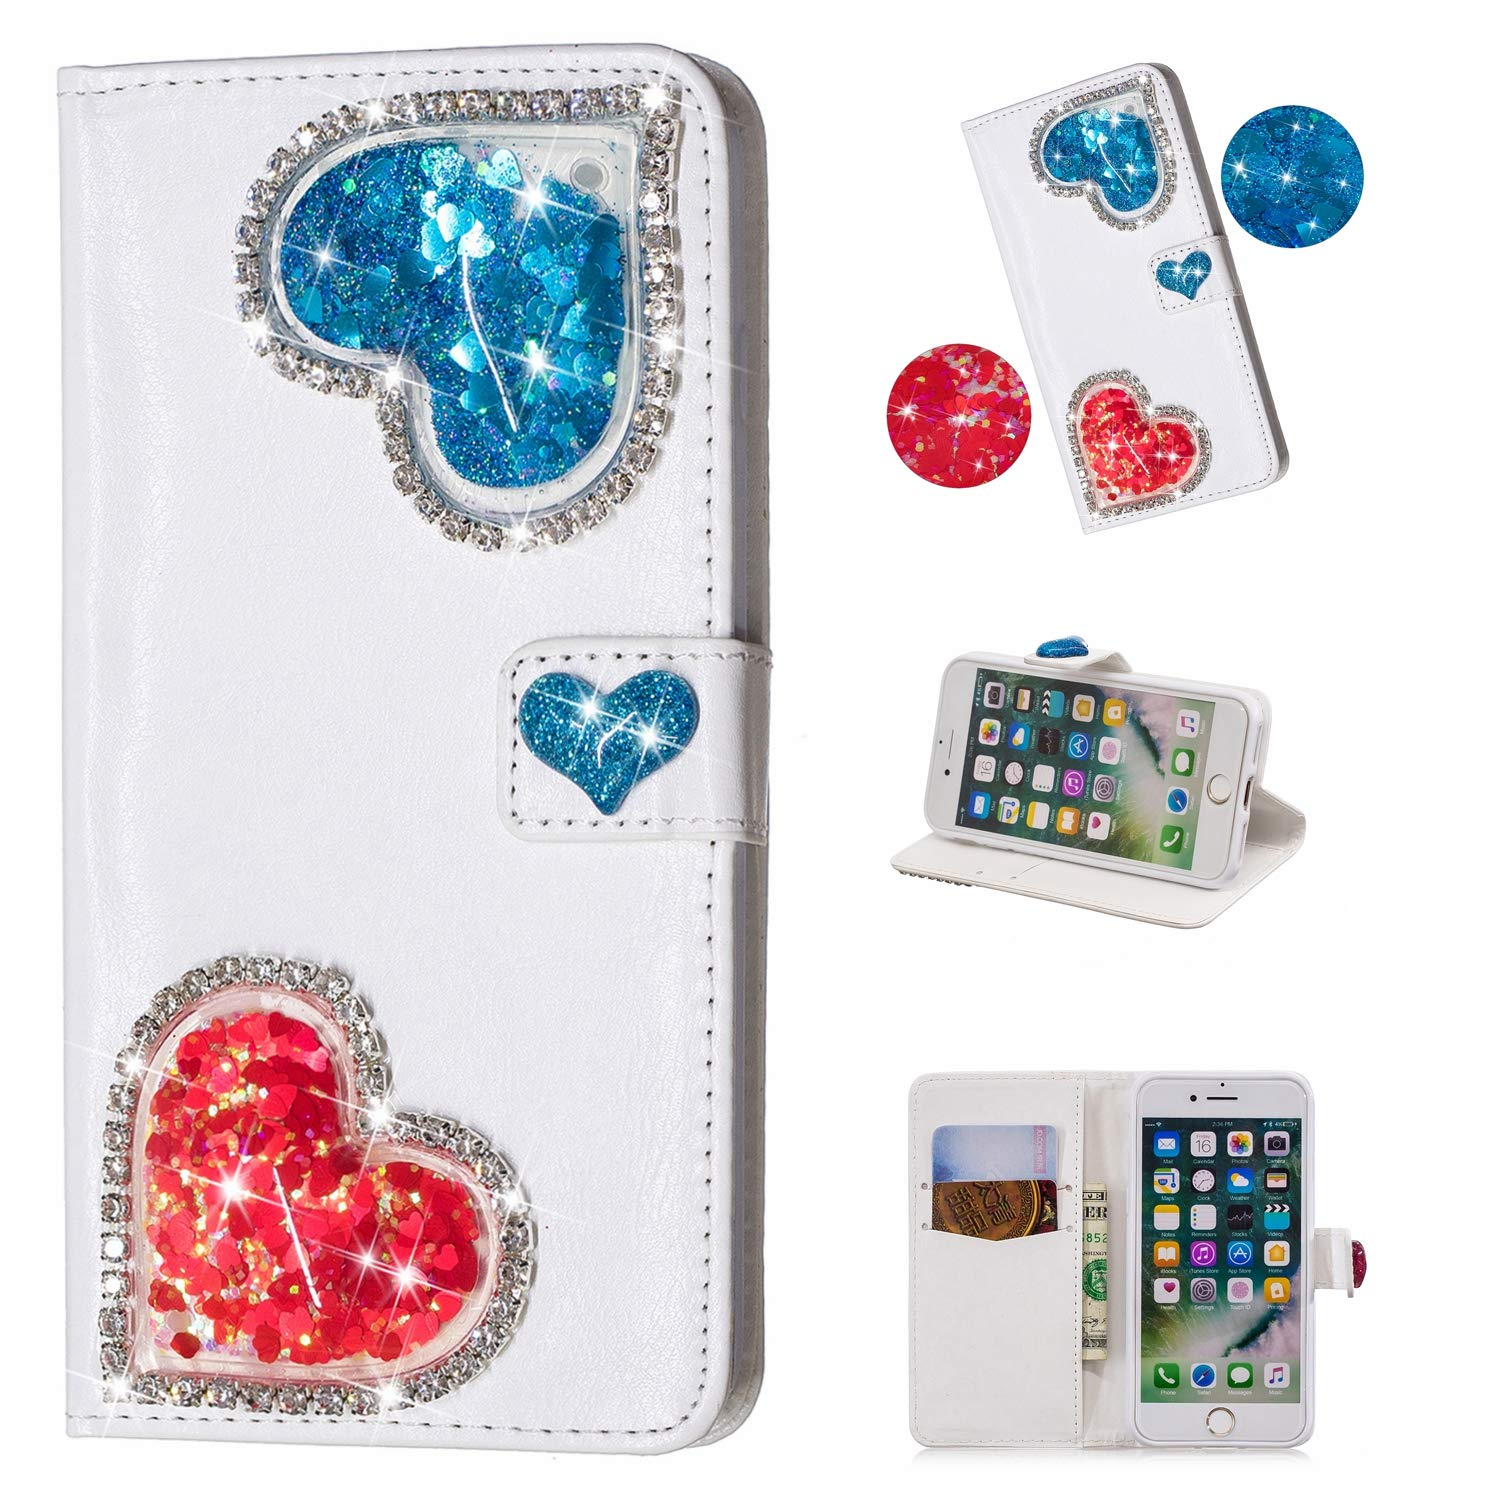 Yobby iPhone 7 Wallet Case,iPhone 8 Diamond Purse Case 3D Bling Floating Glitter Cute Heart White PU Leather Flip Cover with Card Holder Stand Magnetic Protective Shell-Blue by Yobby (Image #5)